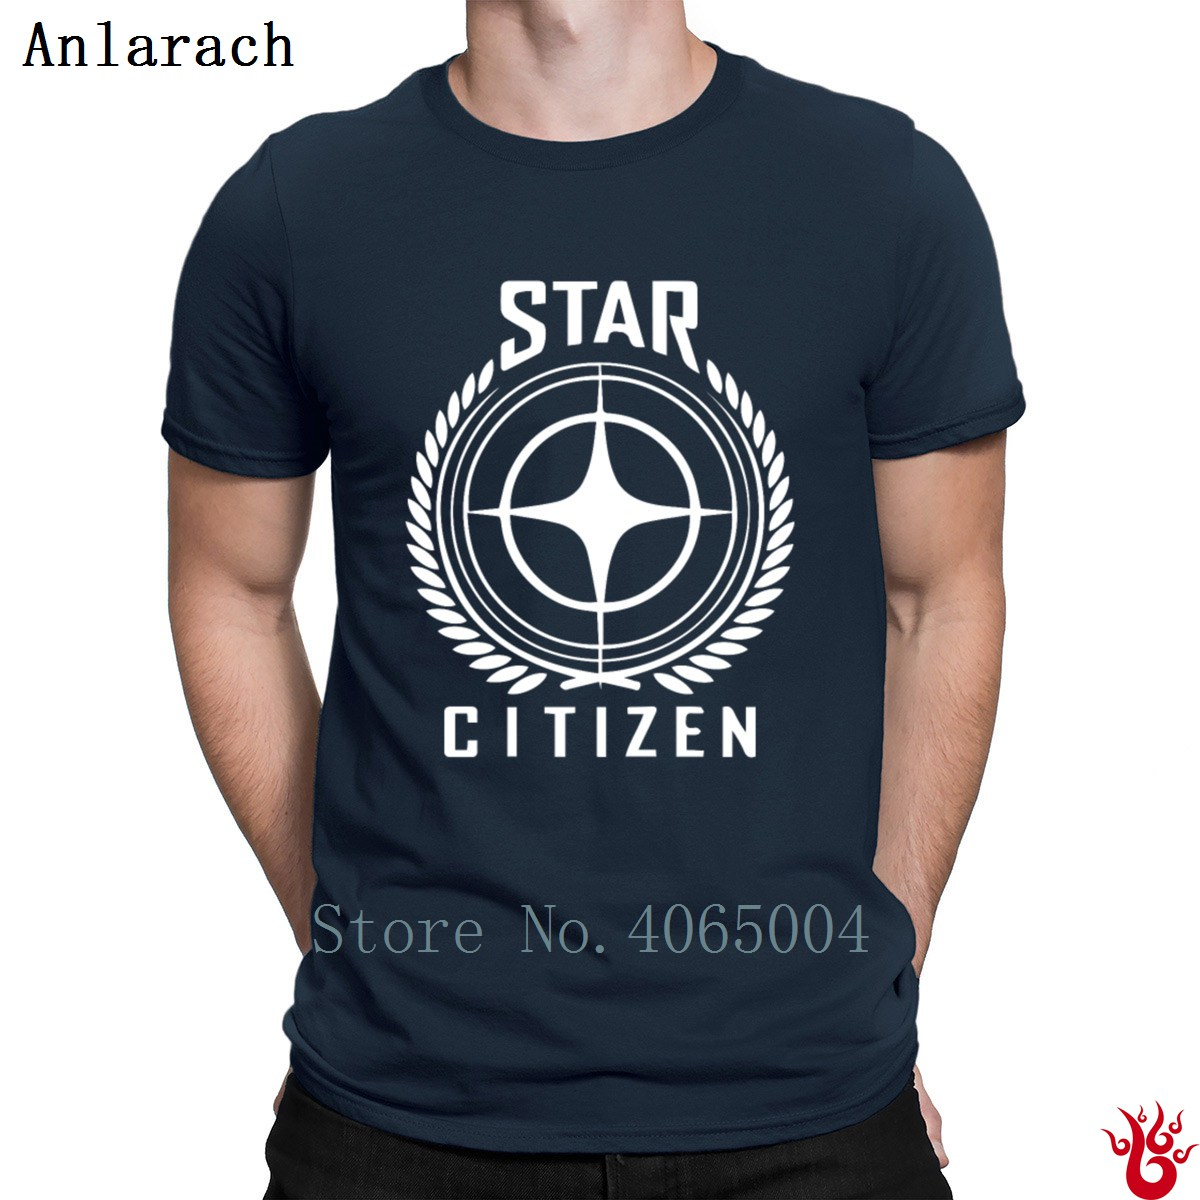 Star Citizen Space Mmo T-Shirt Pictures Cotton Basic Solid Men's Tshirt 2018 Fashion Famous Tee Shirt Size S-3xl Hiphop Tops image